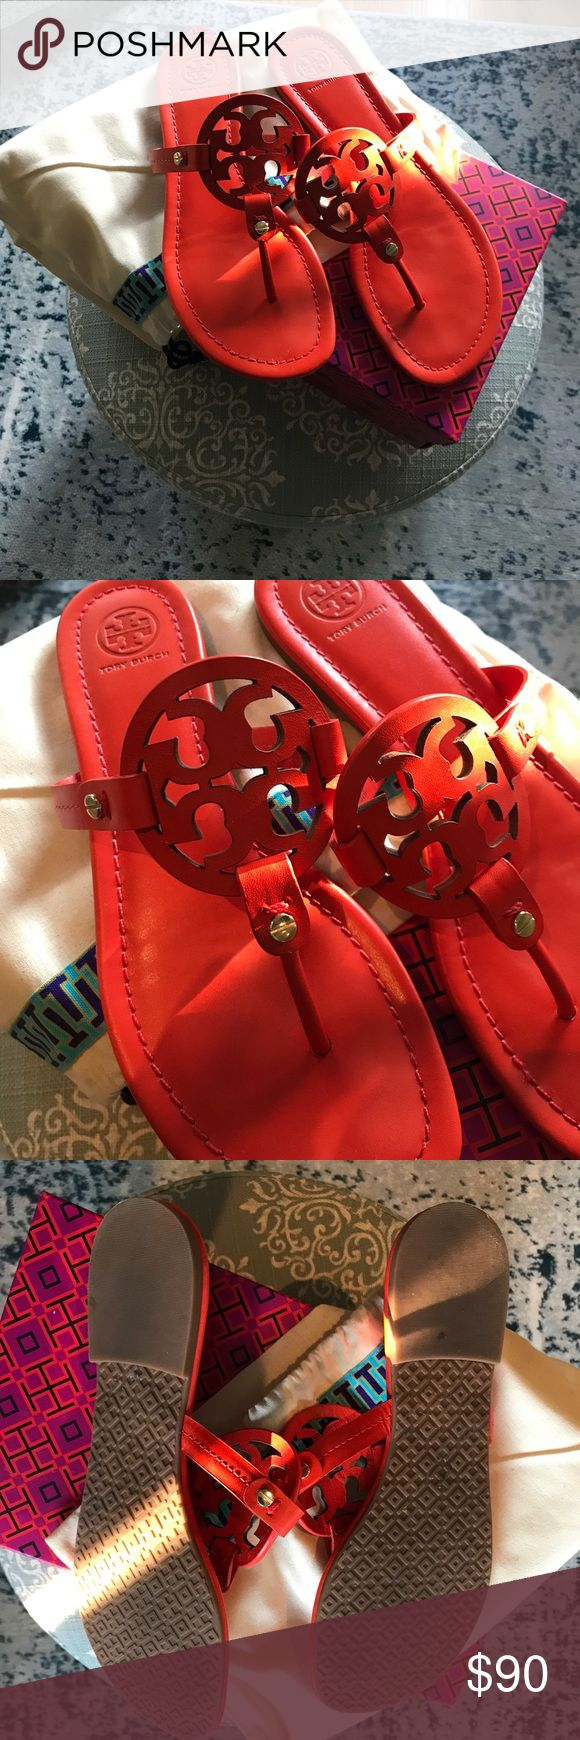 NEW worn once Tory Burch Miller sandals in poppy NEW worn once Tory Burch Miller sandals in poppy red orange / Size 8 / Comes with box and dust bag Tory Burch Shoes Sandals